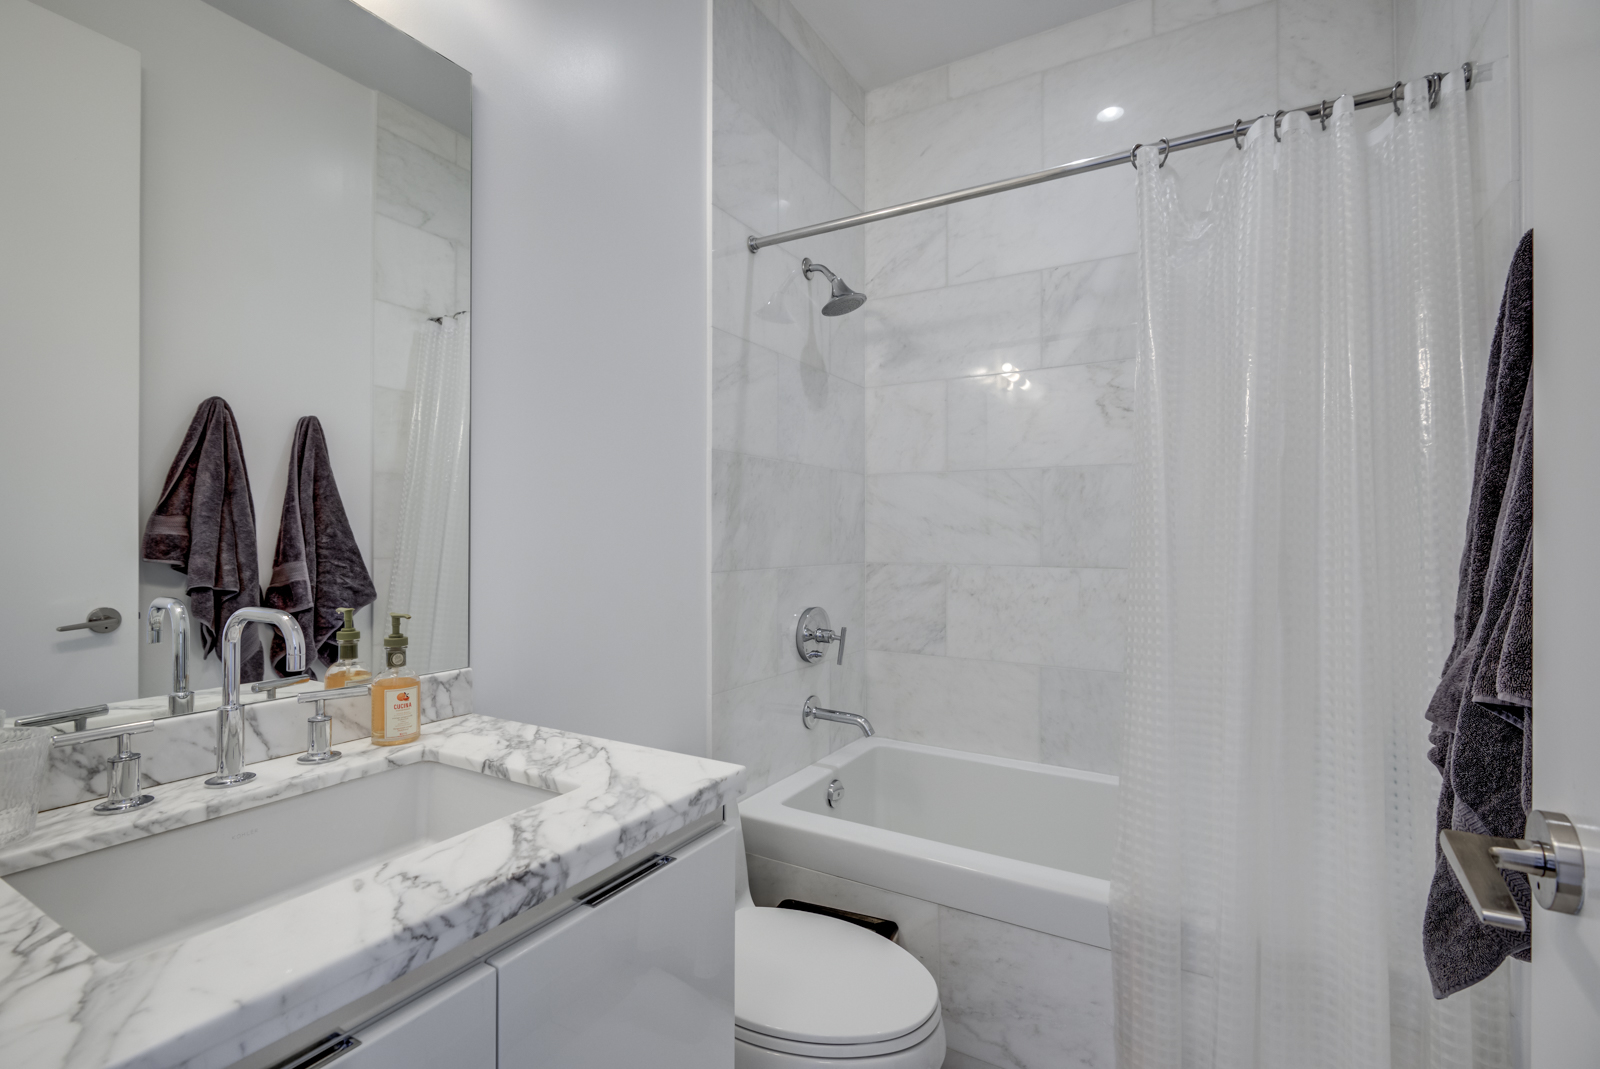 Photo of 2nd bathroom and while smaller it's still rather stunning.